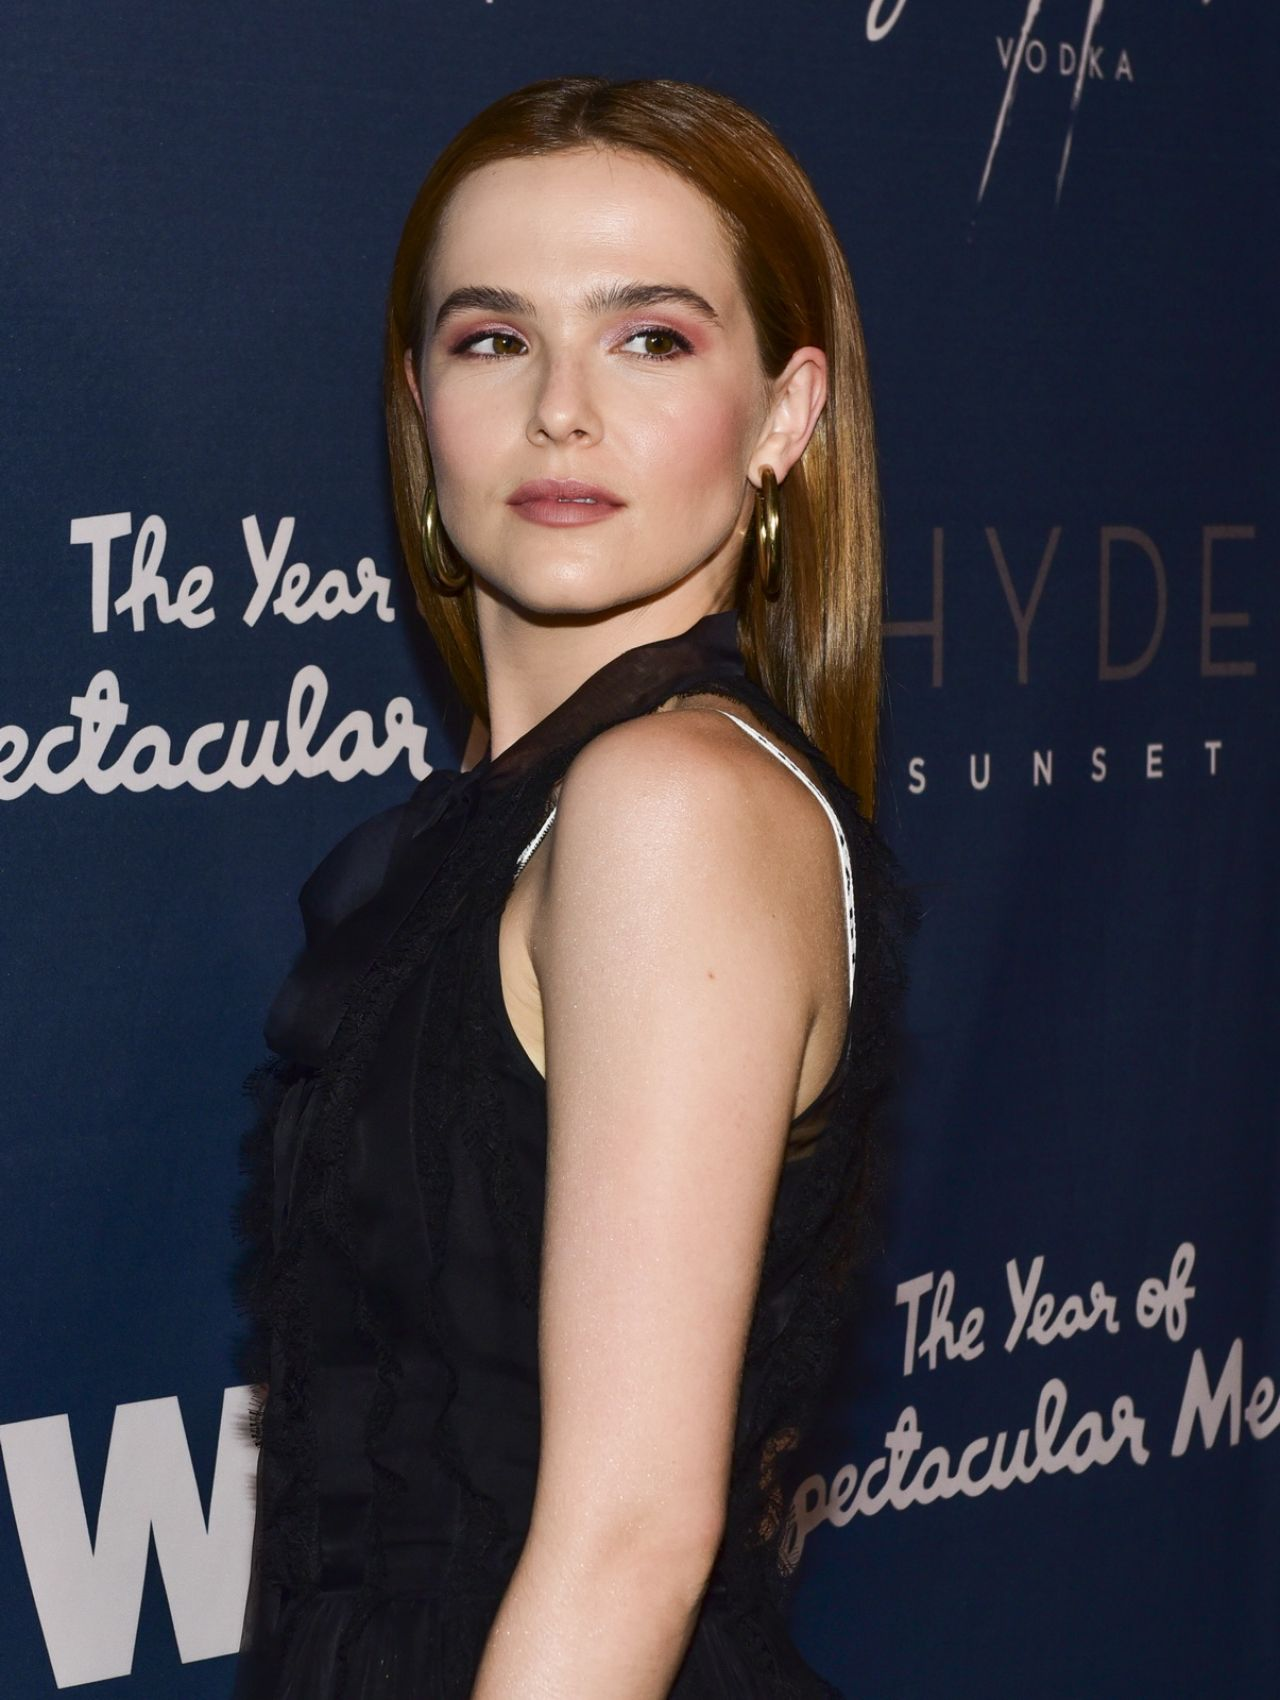 http://celebmafia.com/wp-content/uploads/2018/06/zoey-deutch-the-year-of-spectacular-men-premiere-in-la-3.jpg